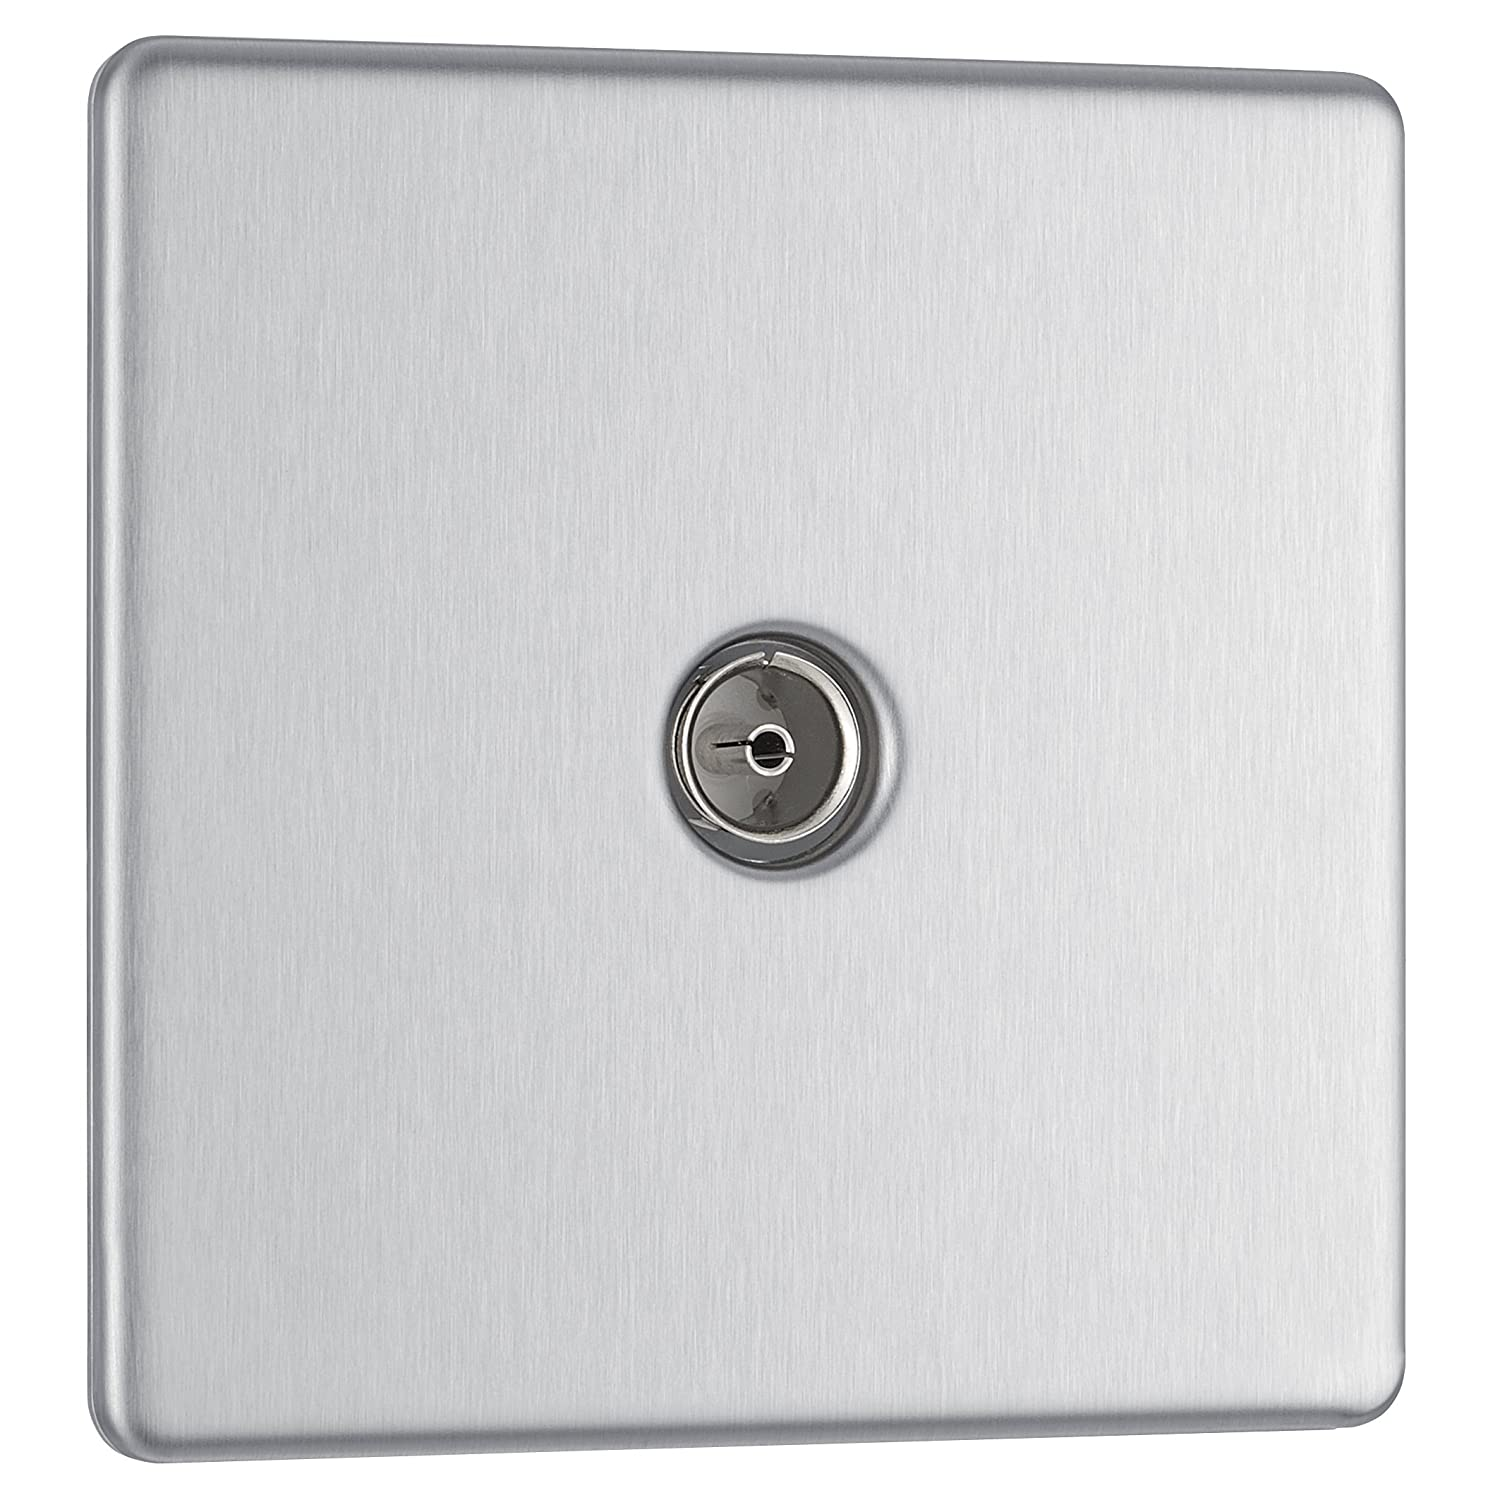 Brushed Steel BG Electrical FBS60 Single Screw less Flat Plate Co-Axial Socket 250 V